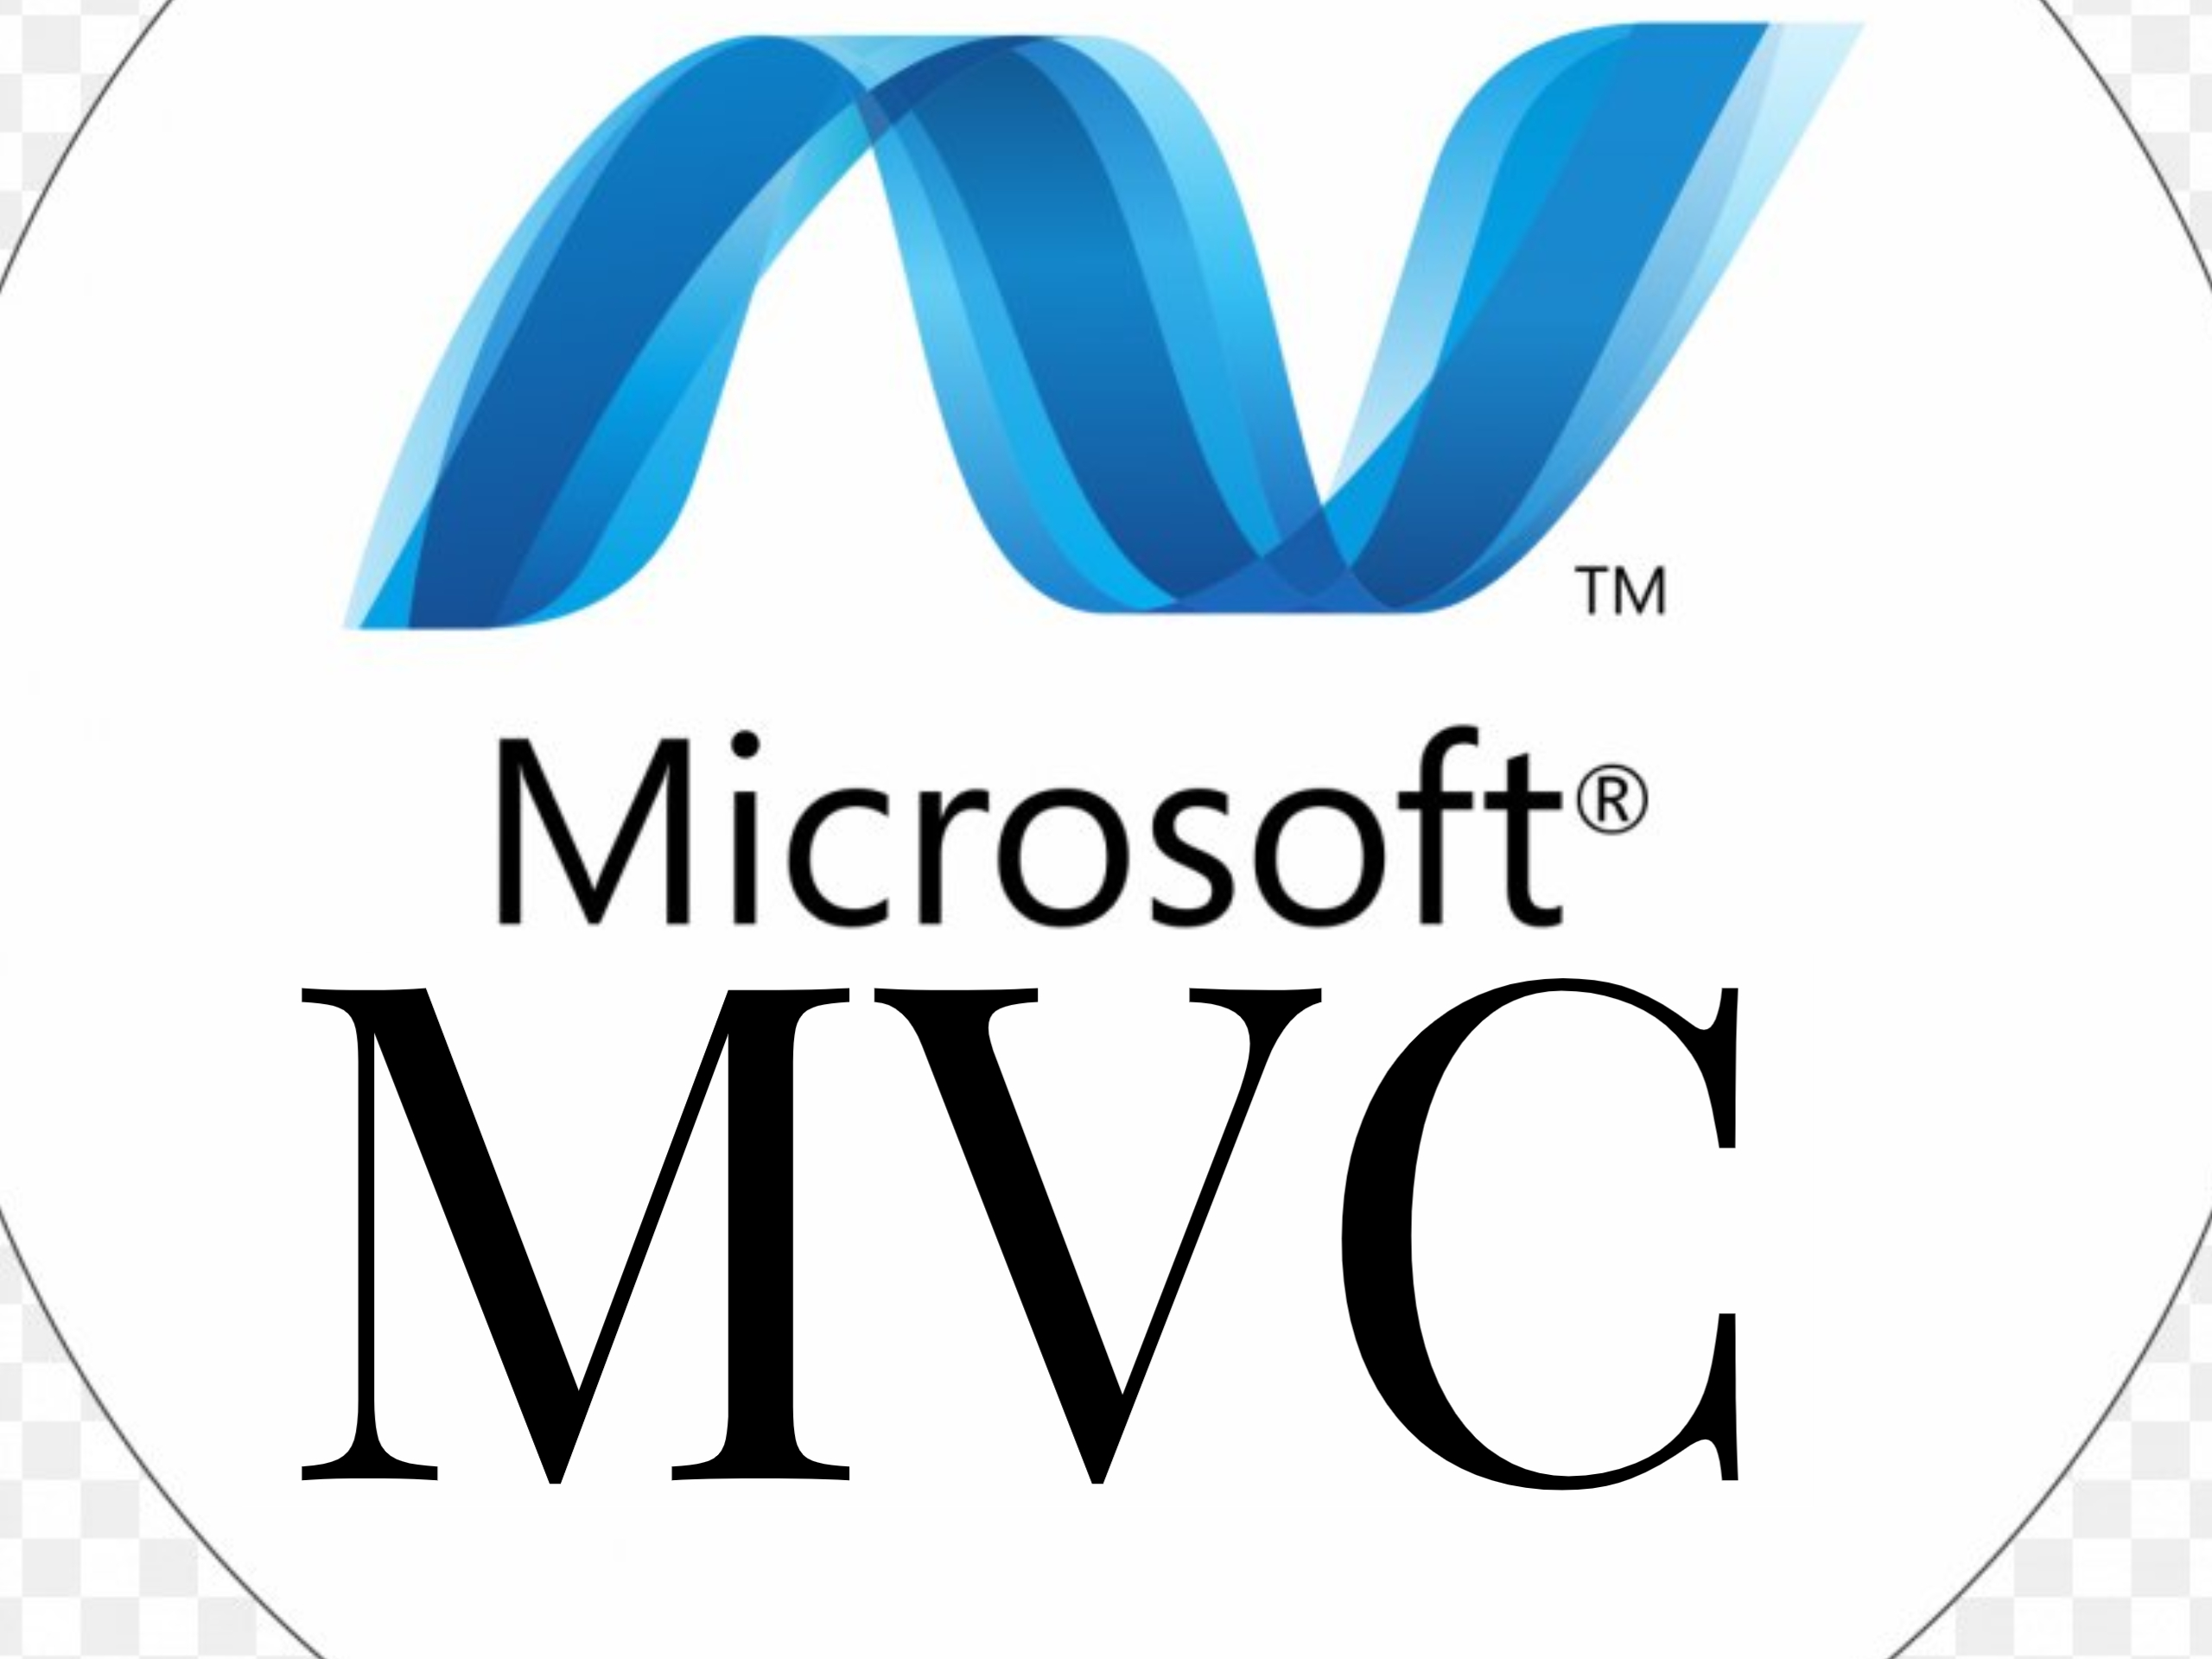 Interview Questions on Asp.net MVC